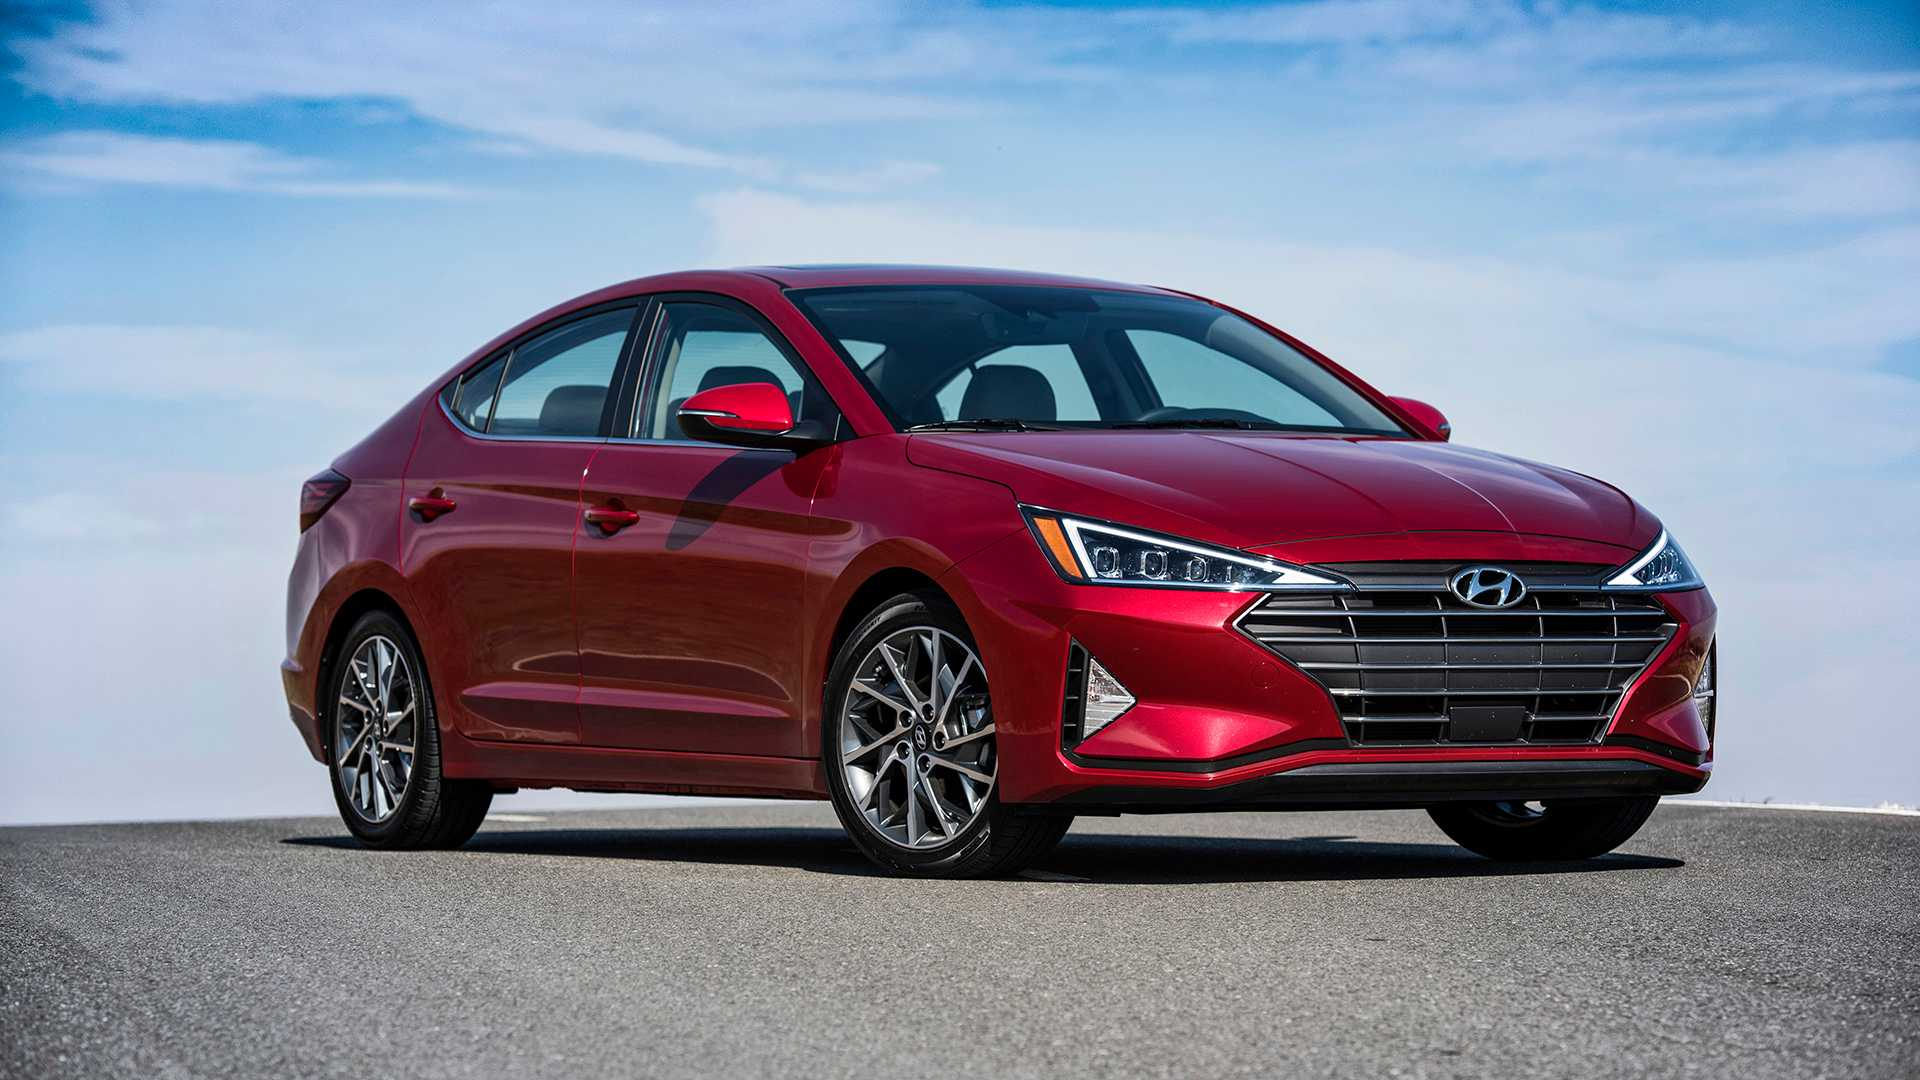 49 Best Review 2019 Hyundai Elantra Limited New Review with 2019 Hyundai Elantra Limited